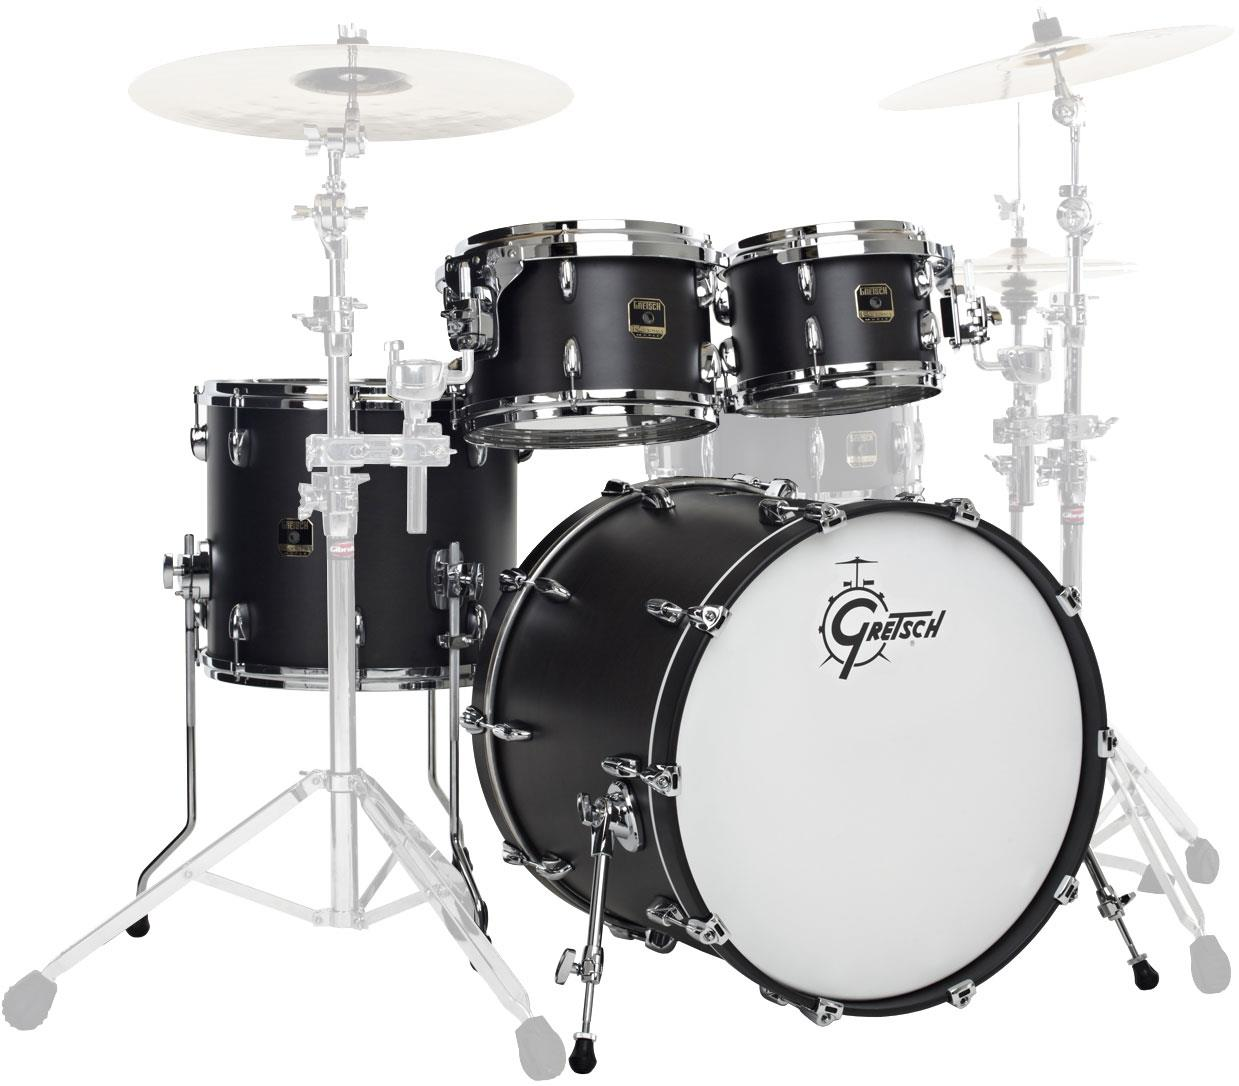 Image of Gretsch Drums E824Q Renown Maple Satin Black 19239253101